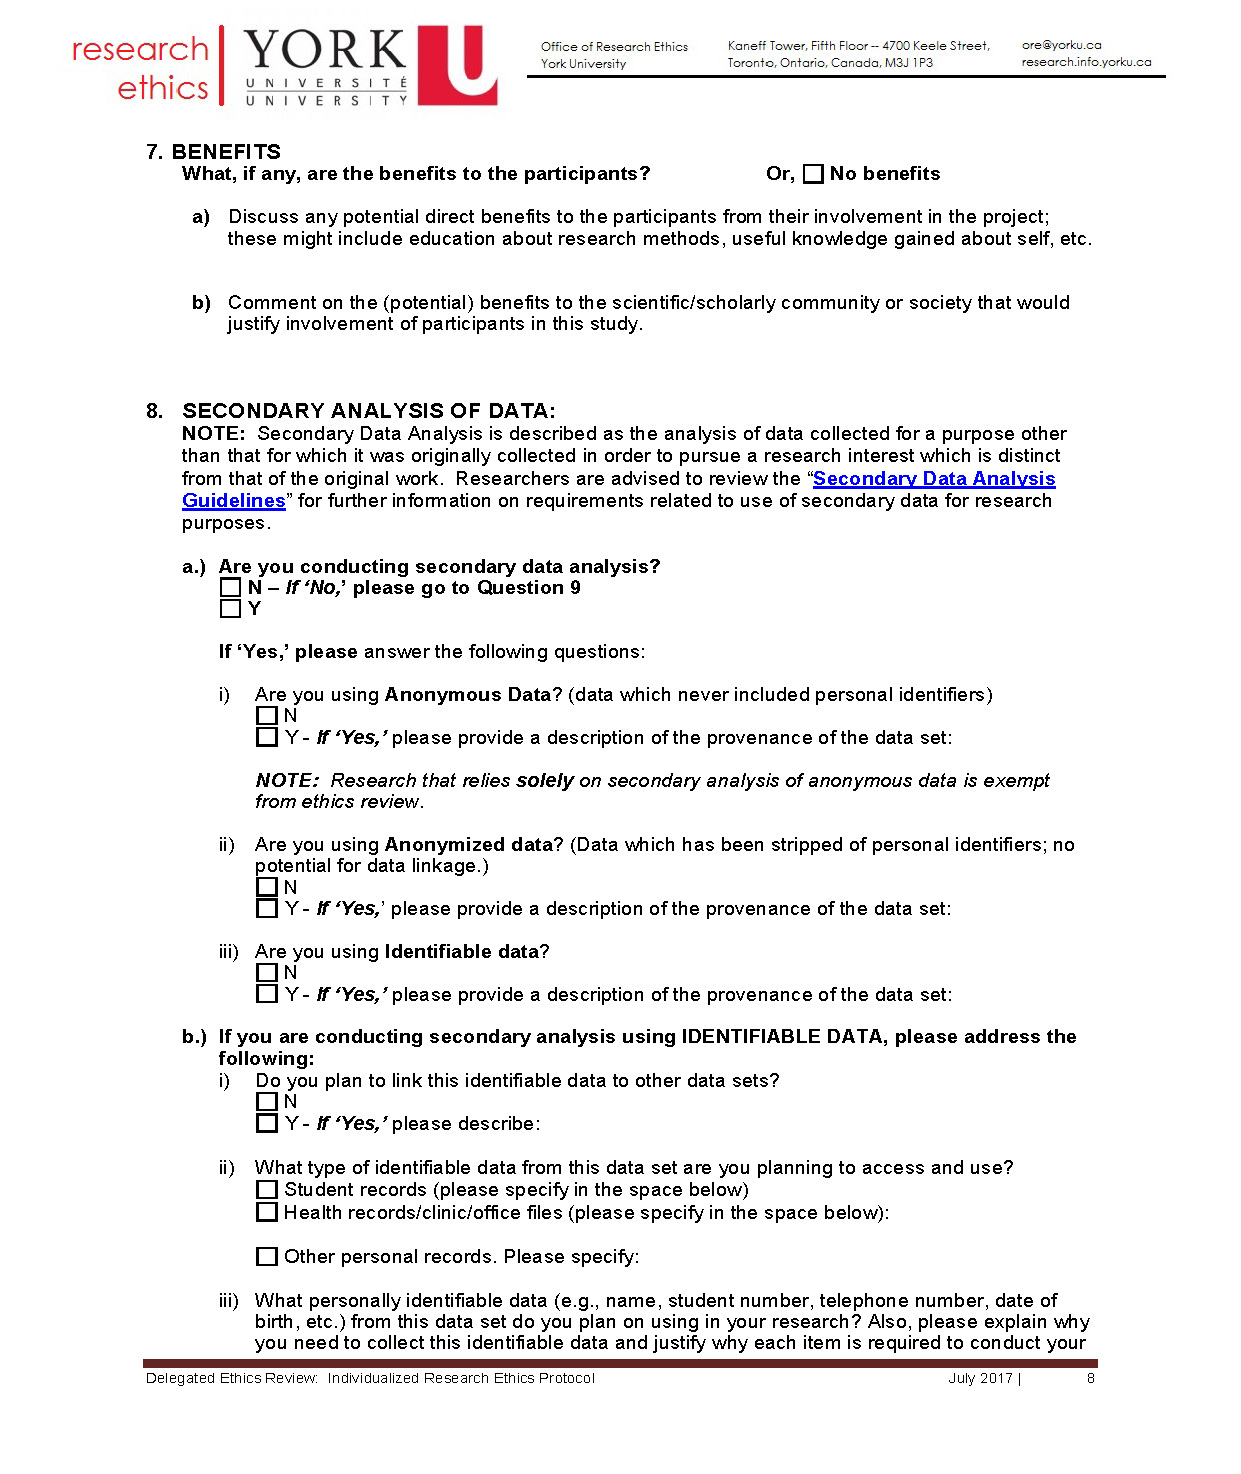 full-size image of the individualized protocol from research ethics page 8